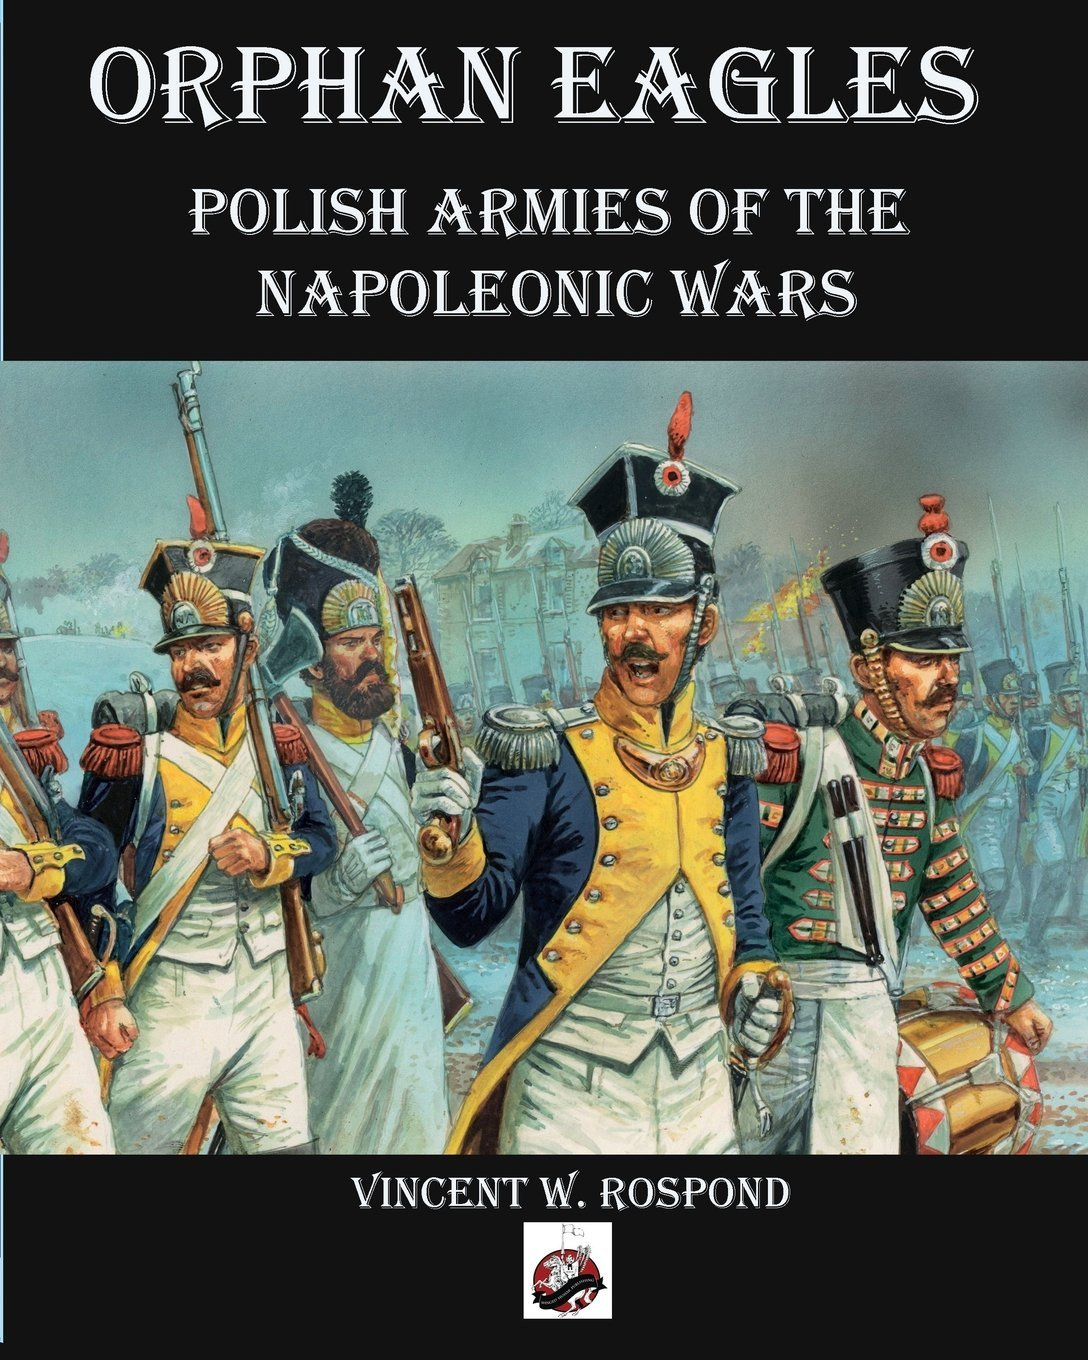 Orphan Eagles - Polish armies of the Napoleonic wars